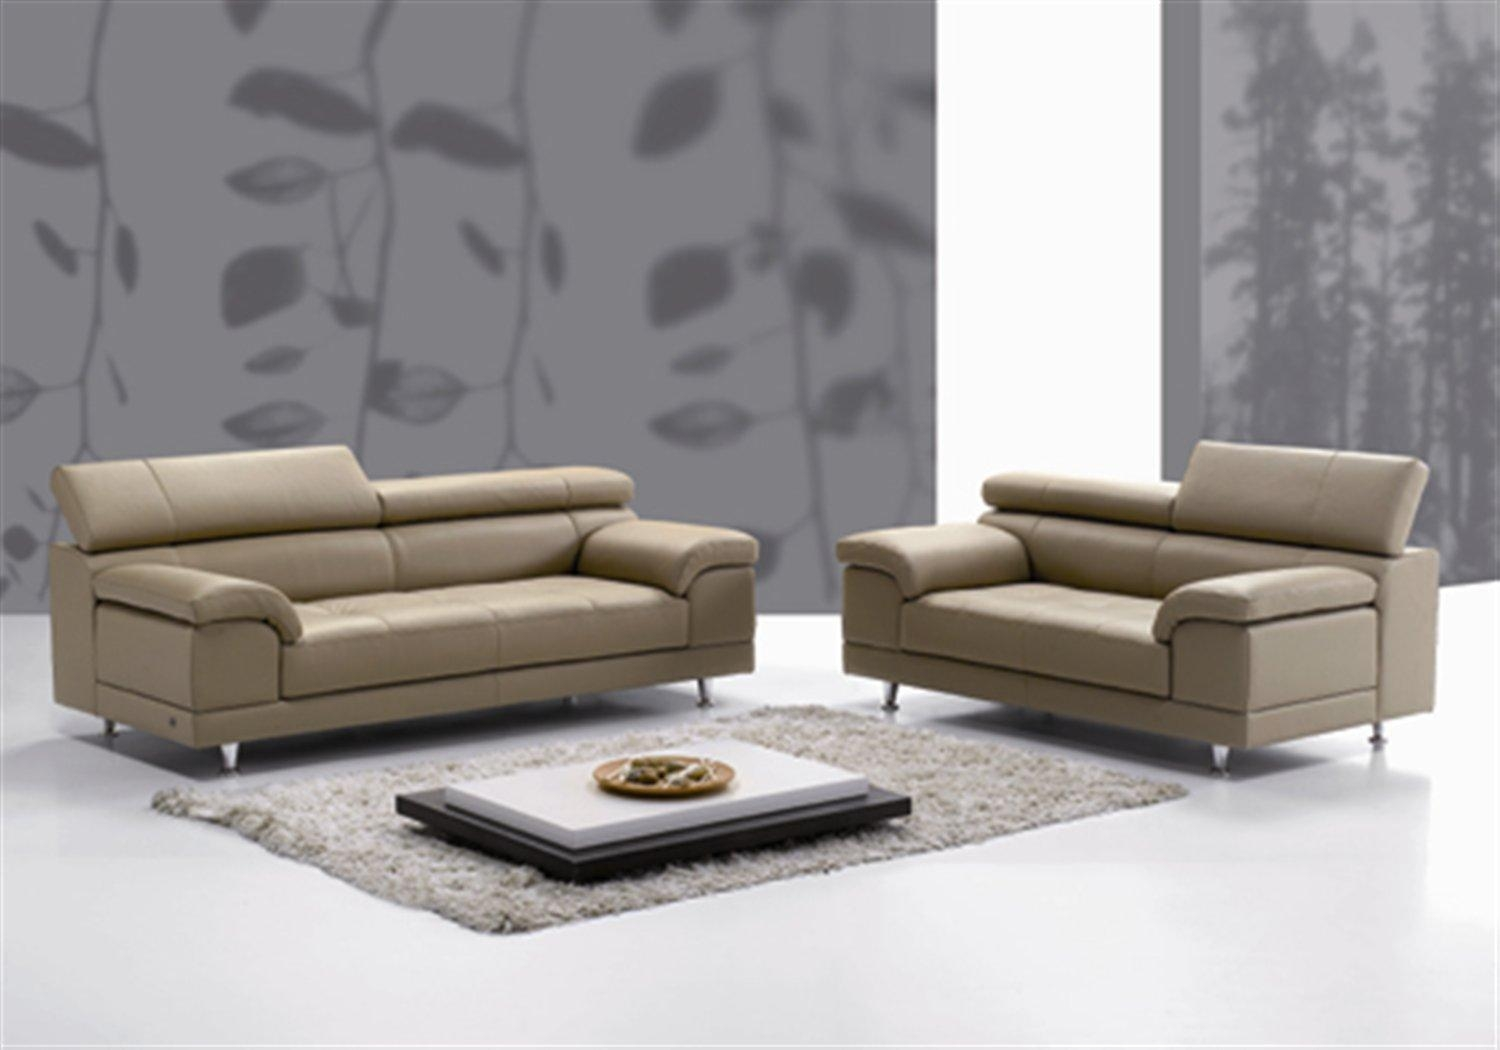 Italian Leather Sofa, Affordable And Quality From Piquattro with Italian Leather Sofas